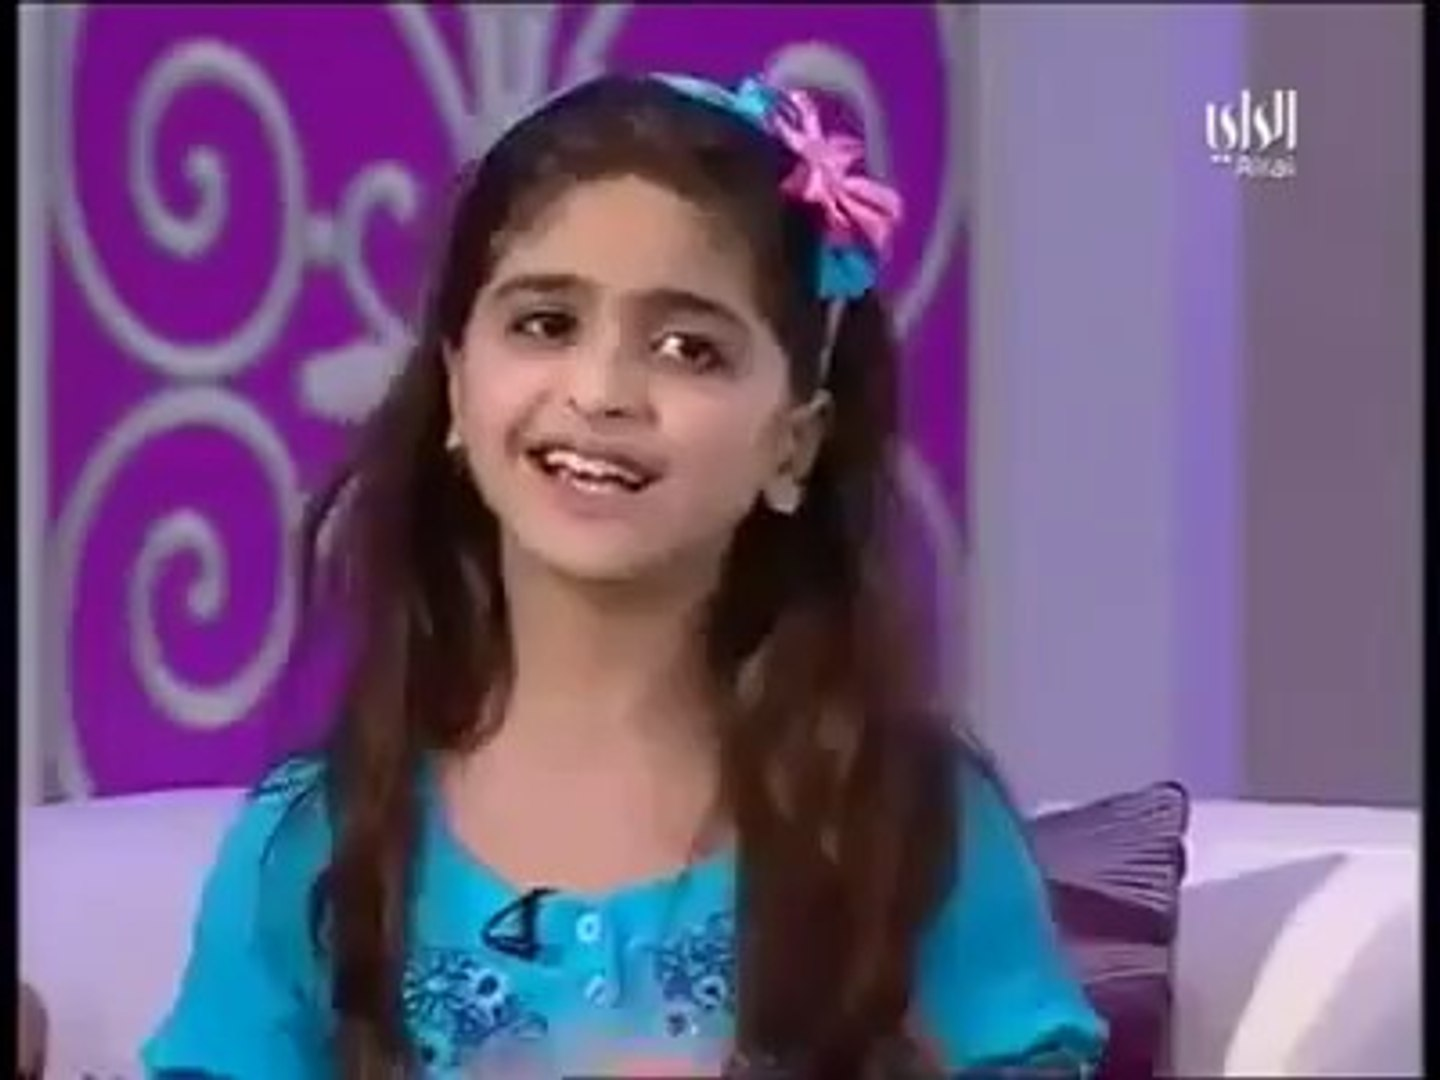 An Arabic Little Girl Singing A Hindi Song 'Humko Humise Chura Lo' Very  Nicely